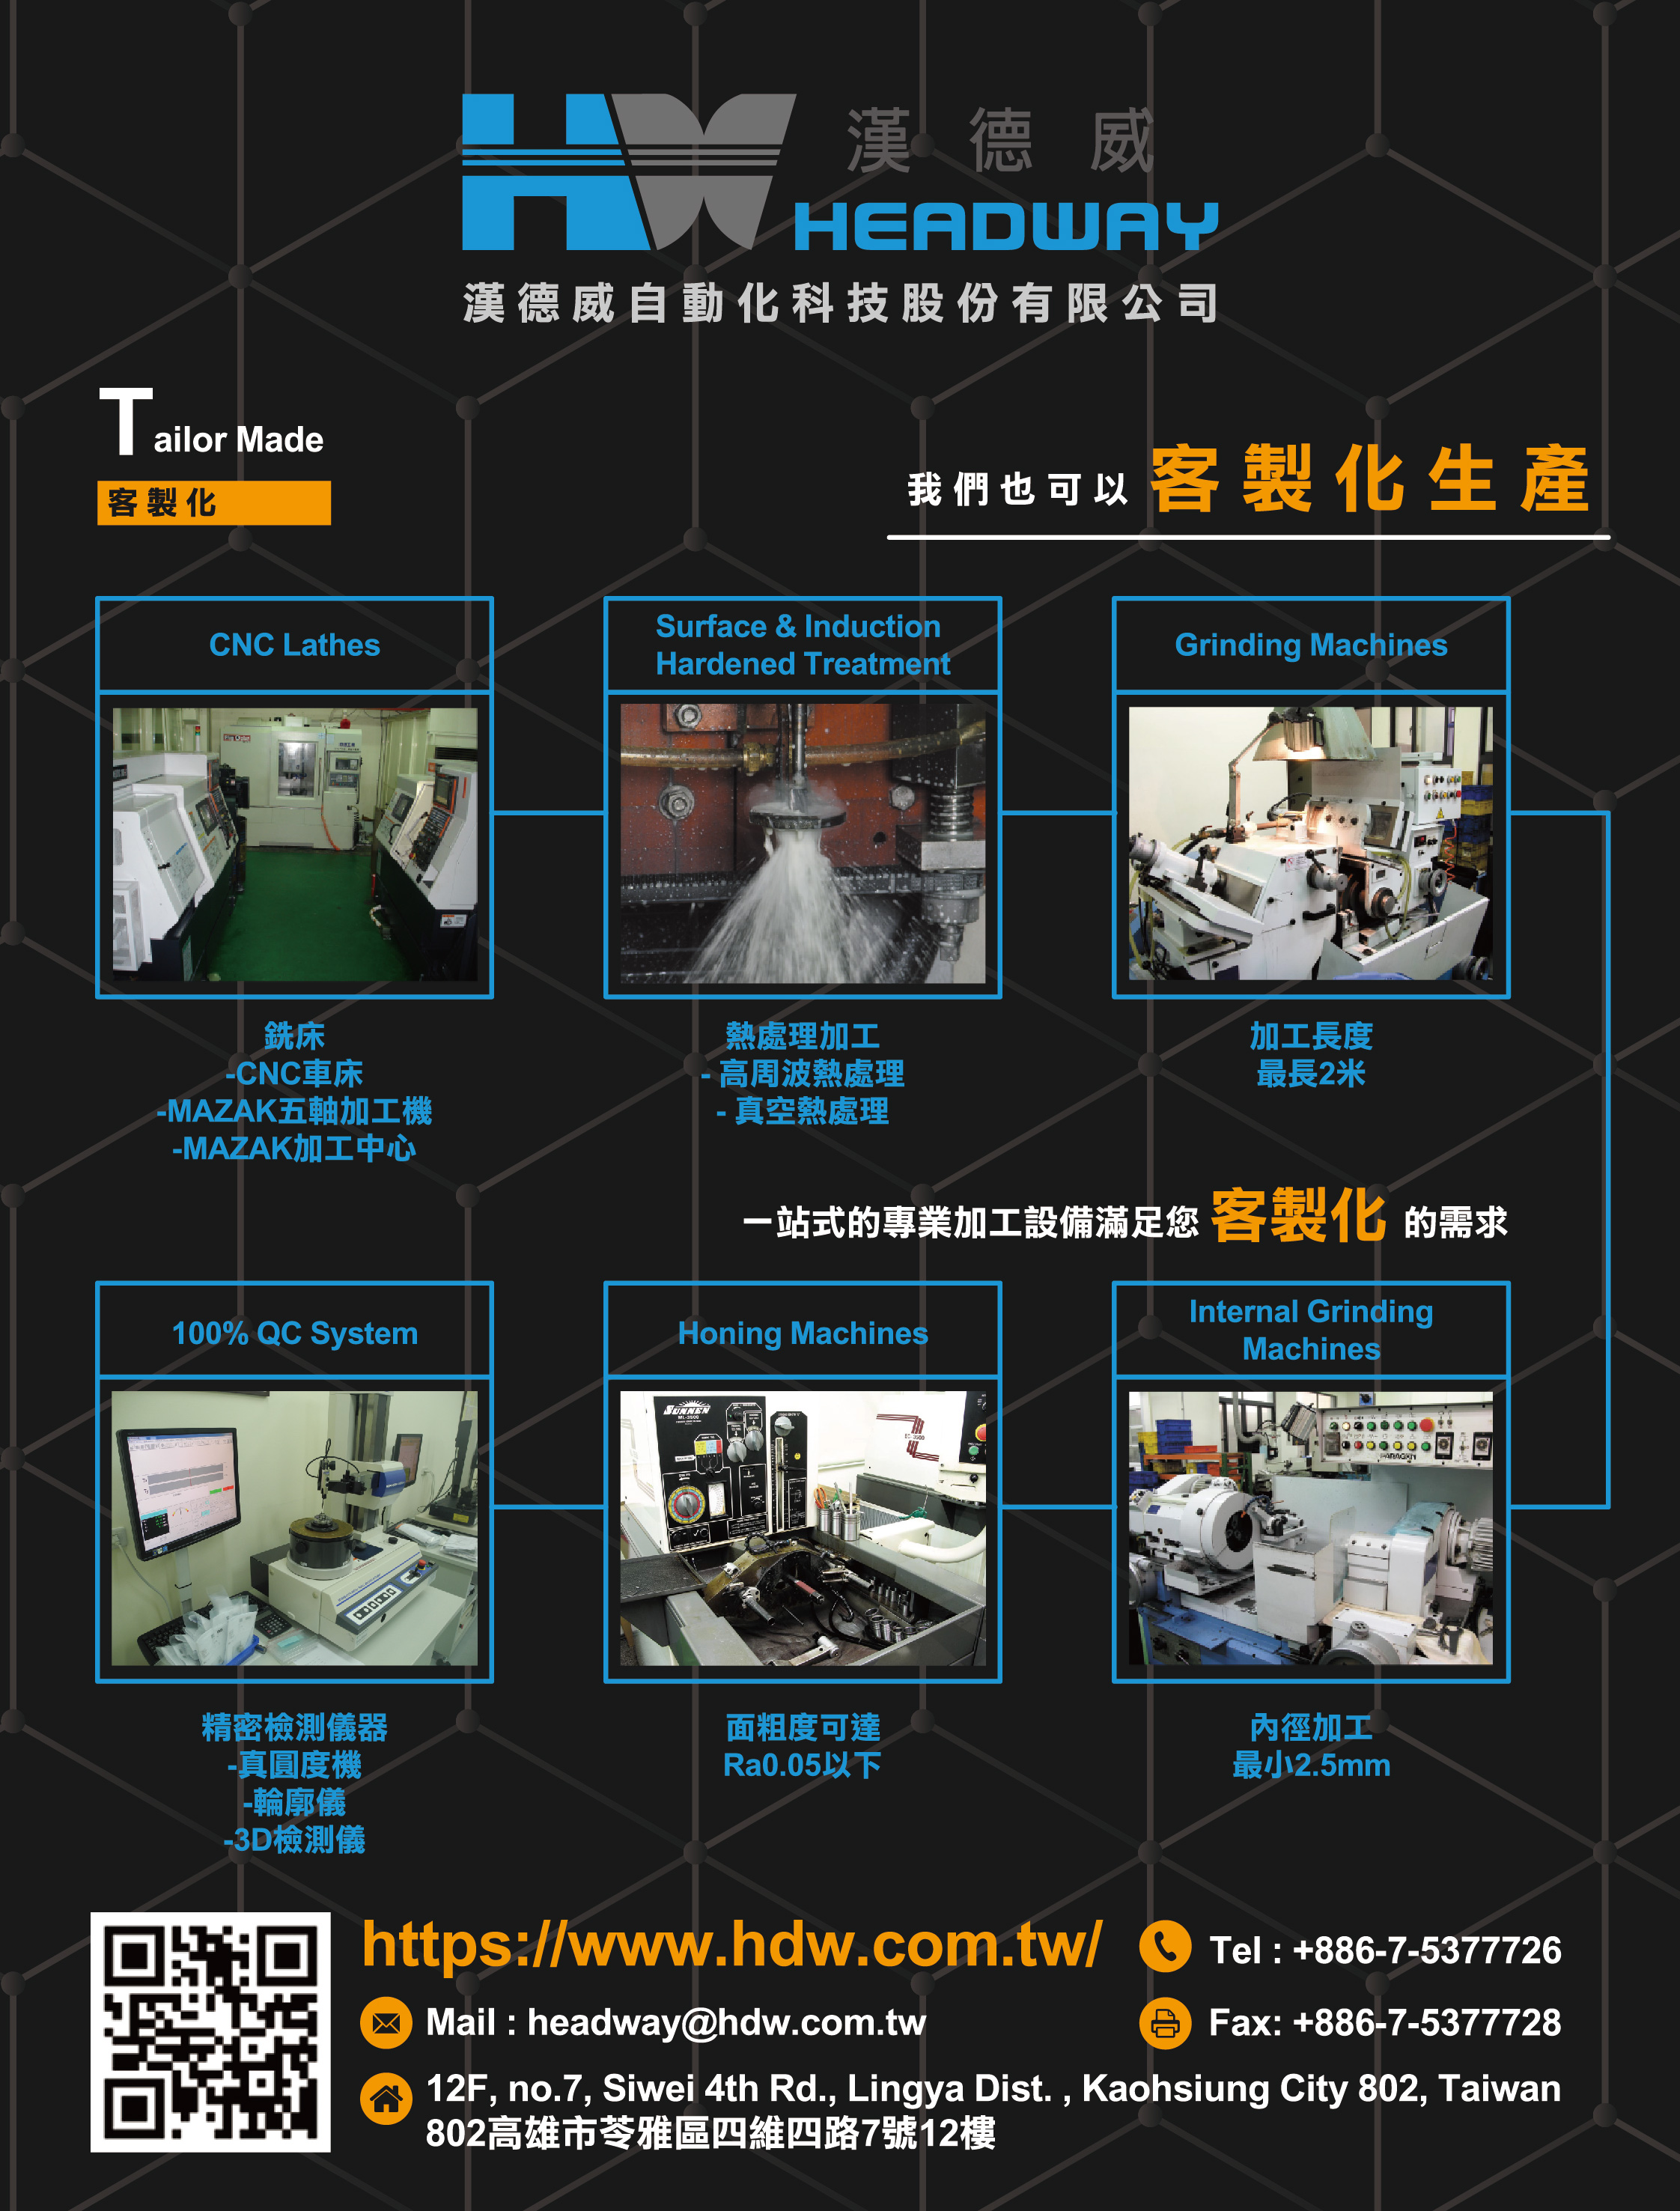 HEADWAY TRADING CO., LTD.